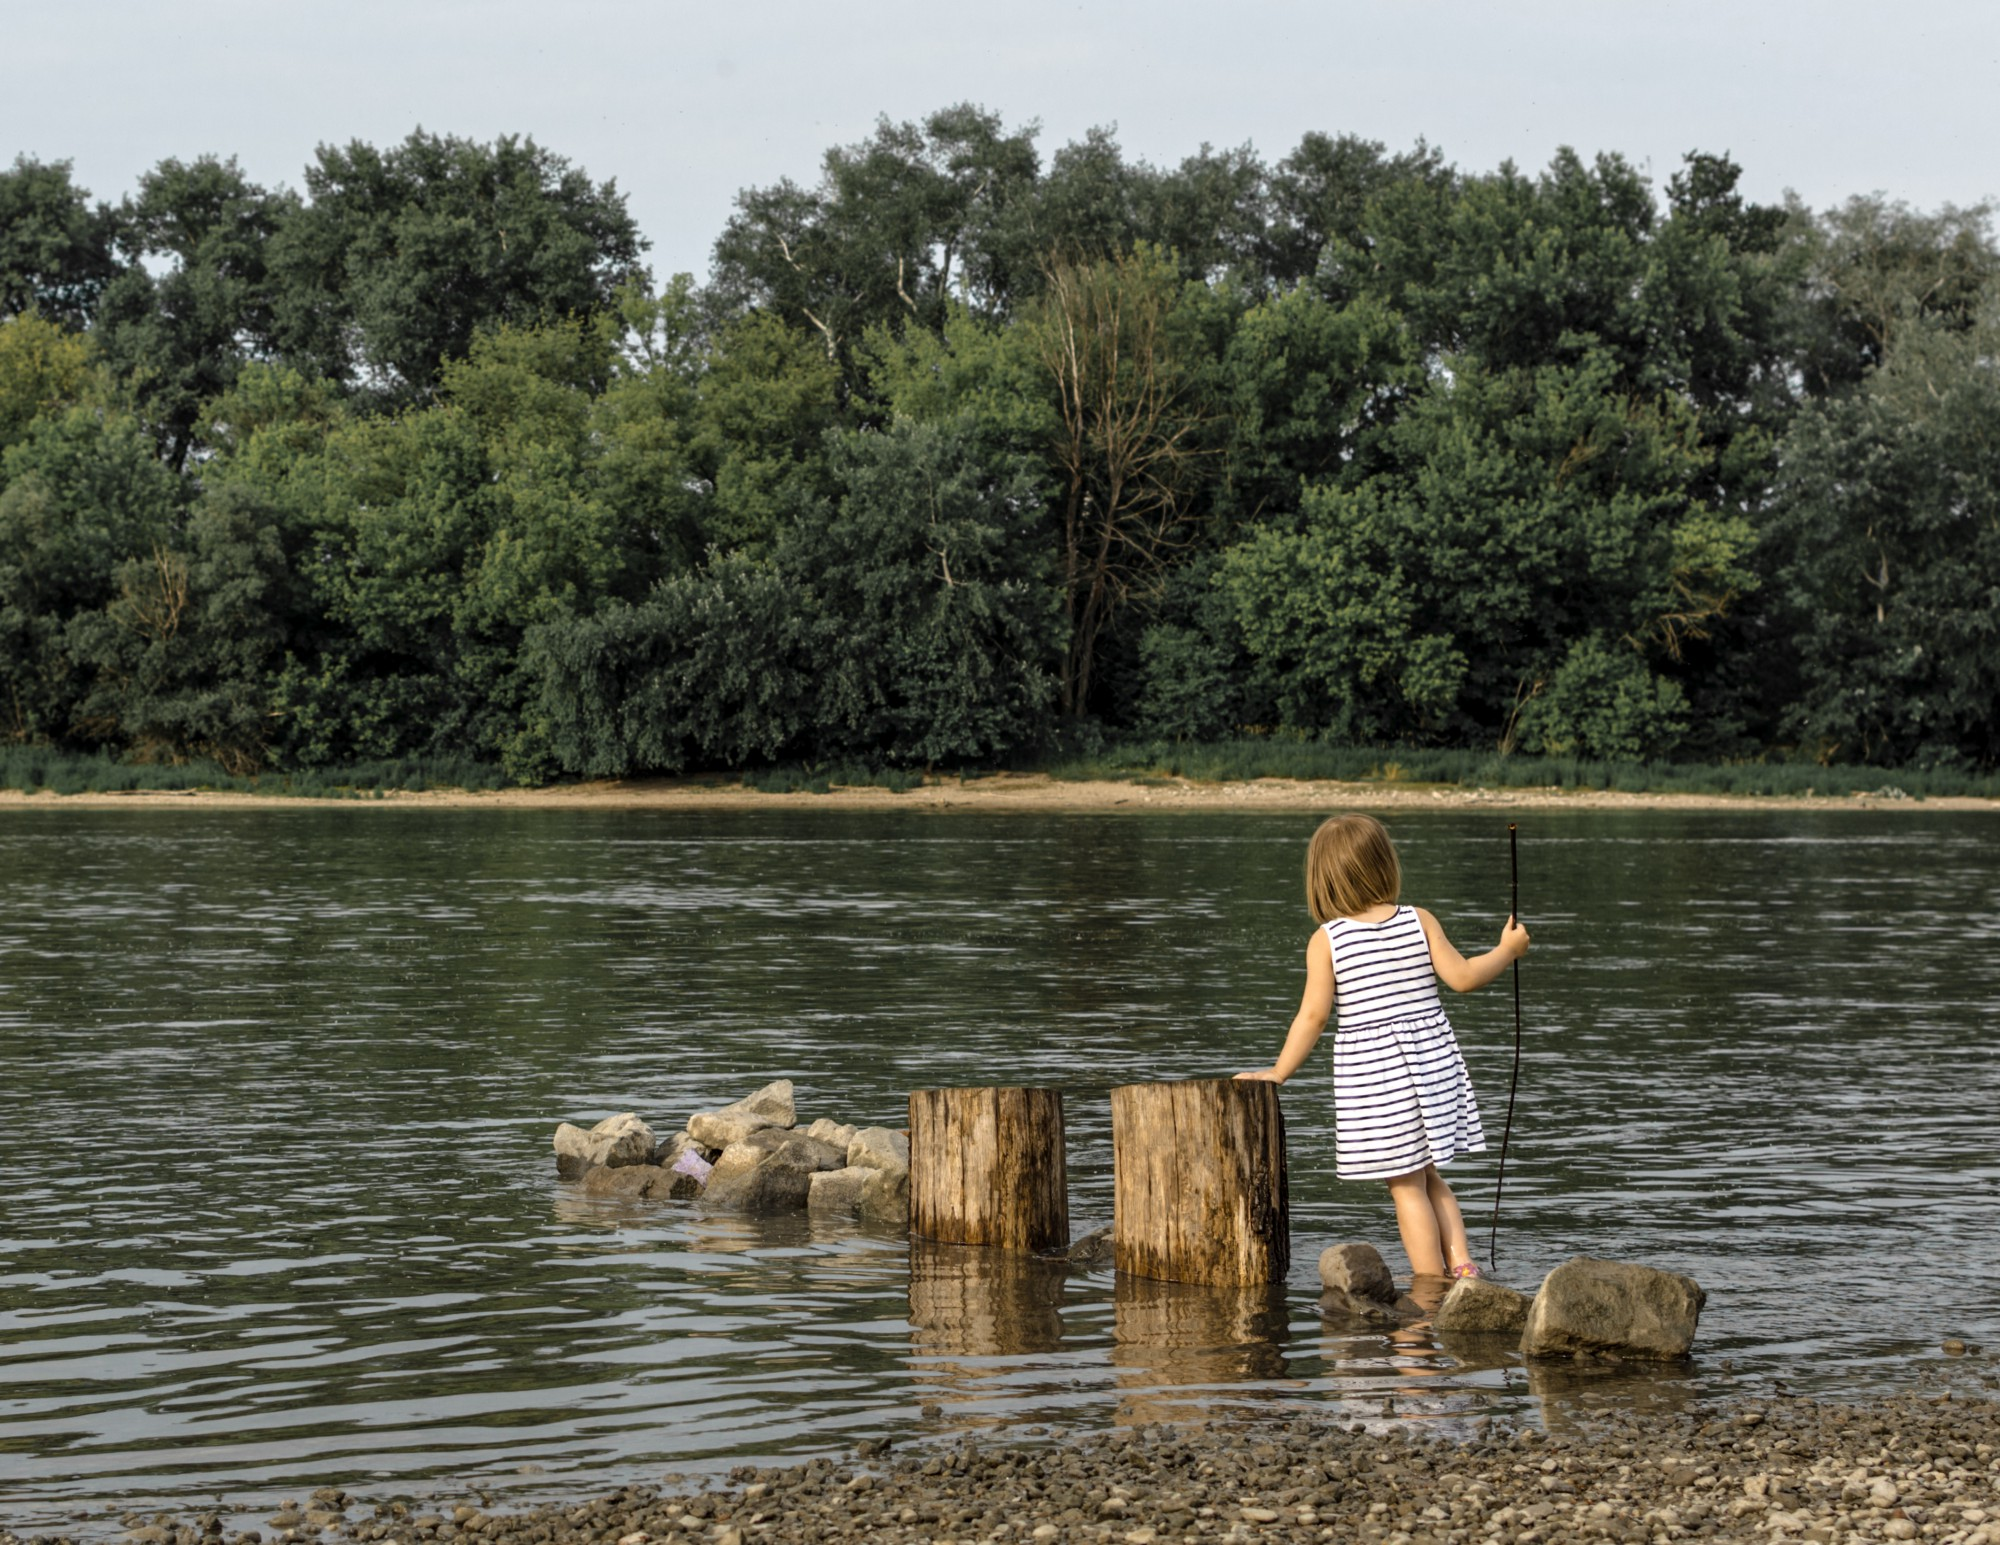 A young girl playing by the lake